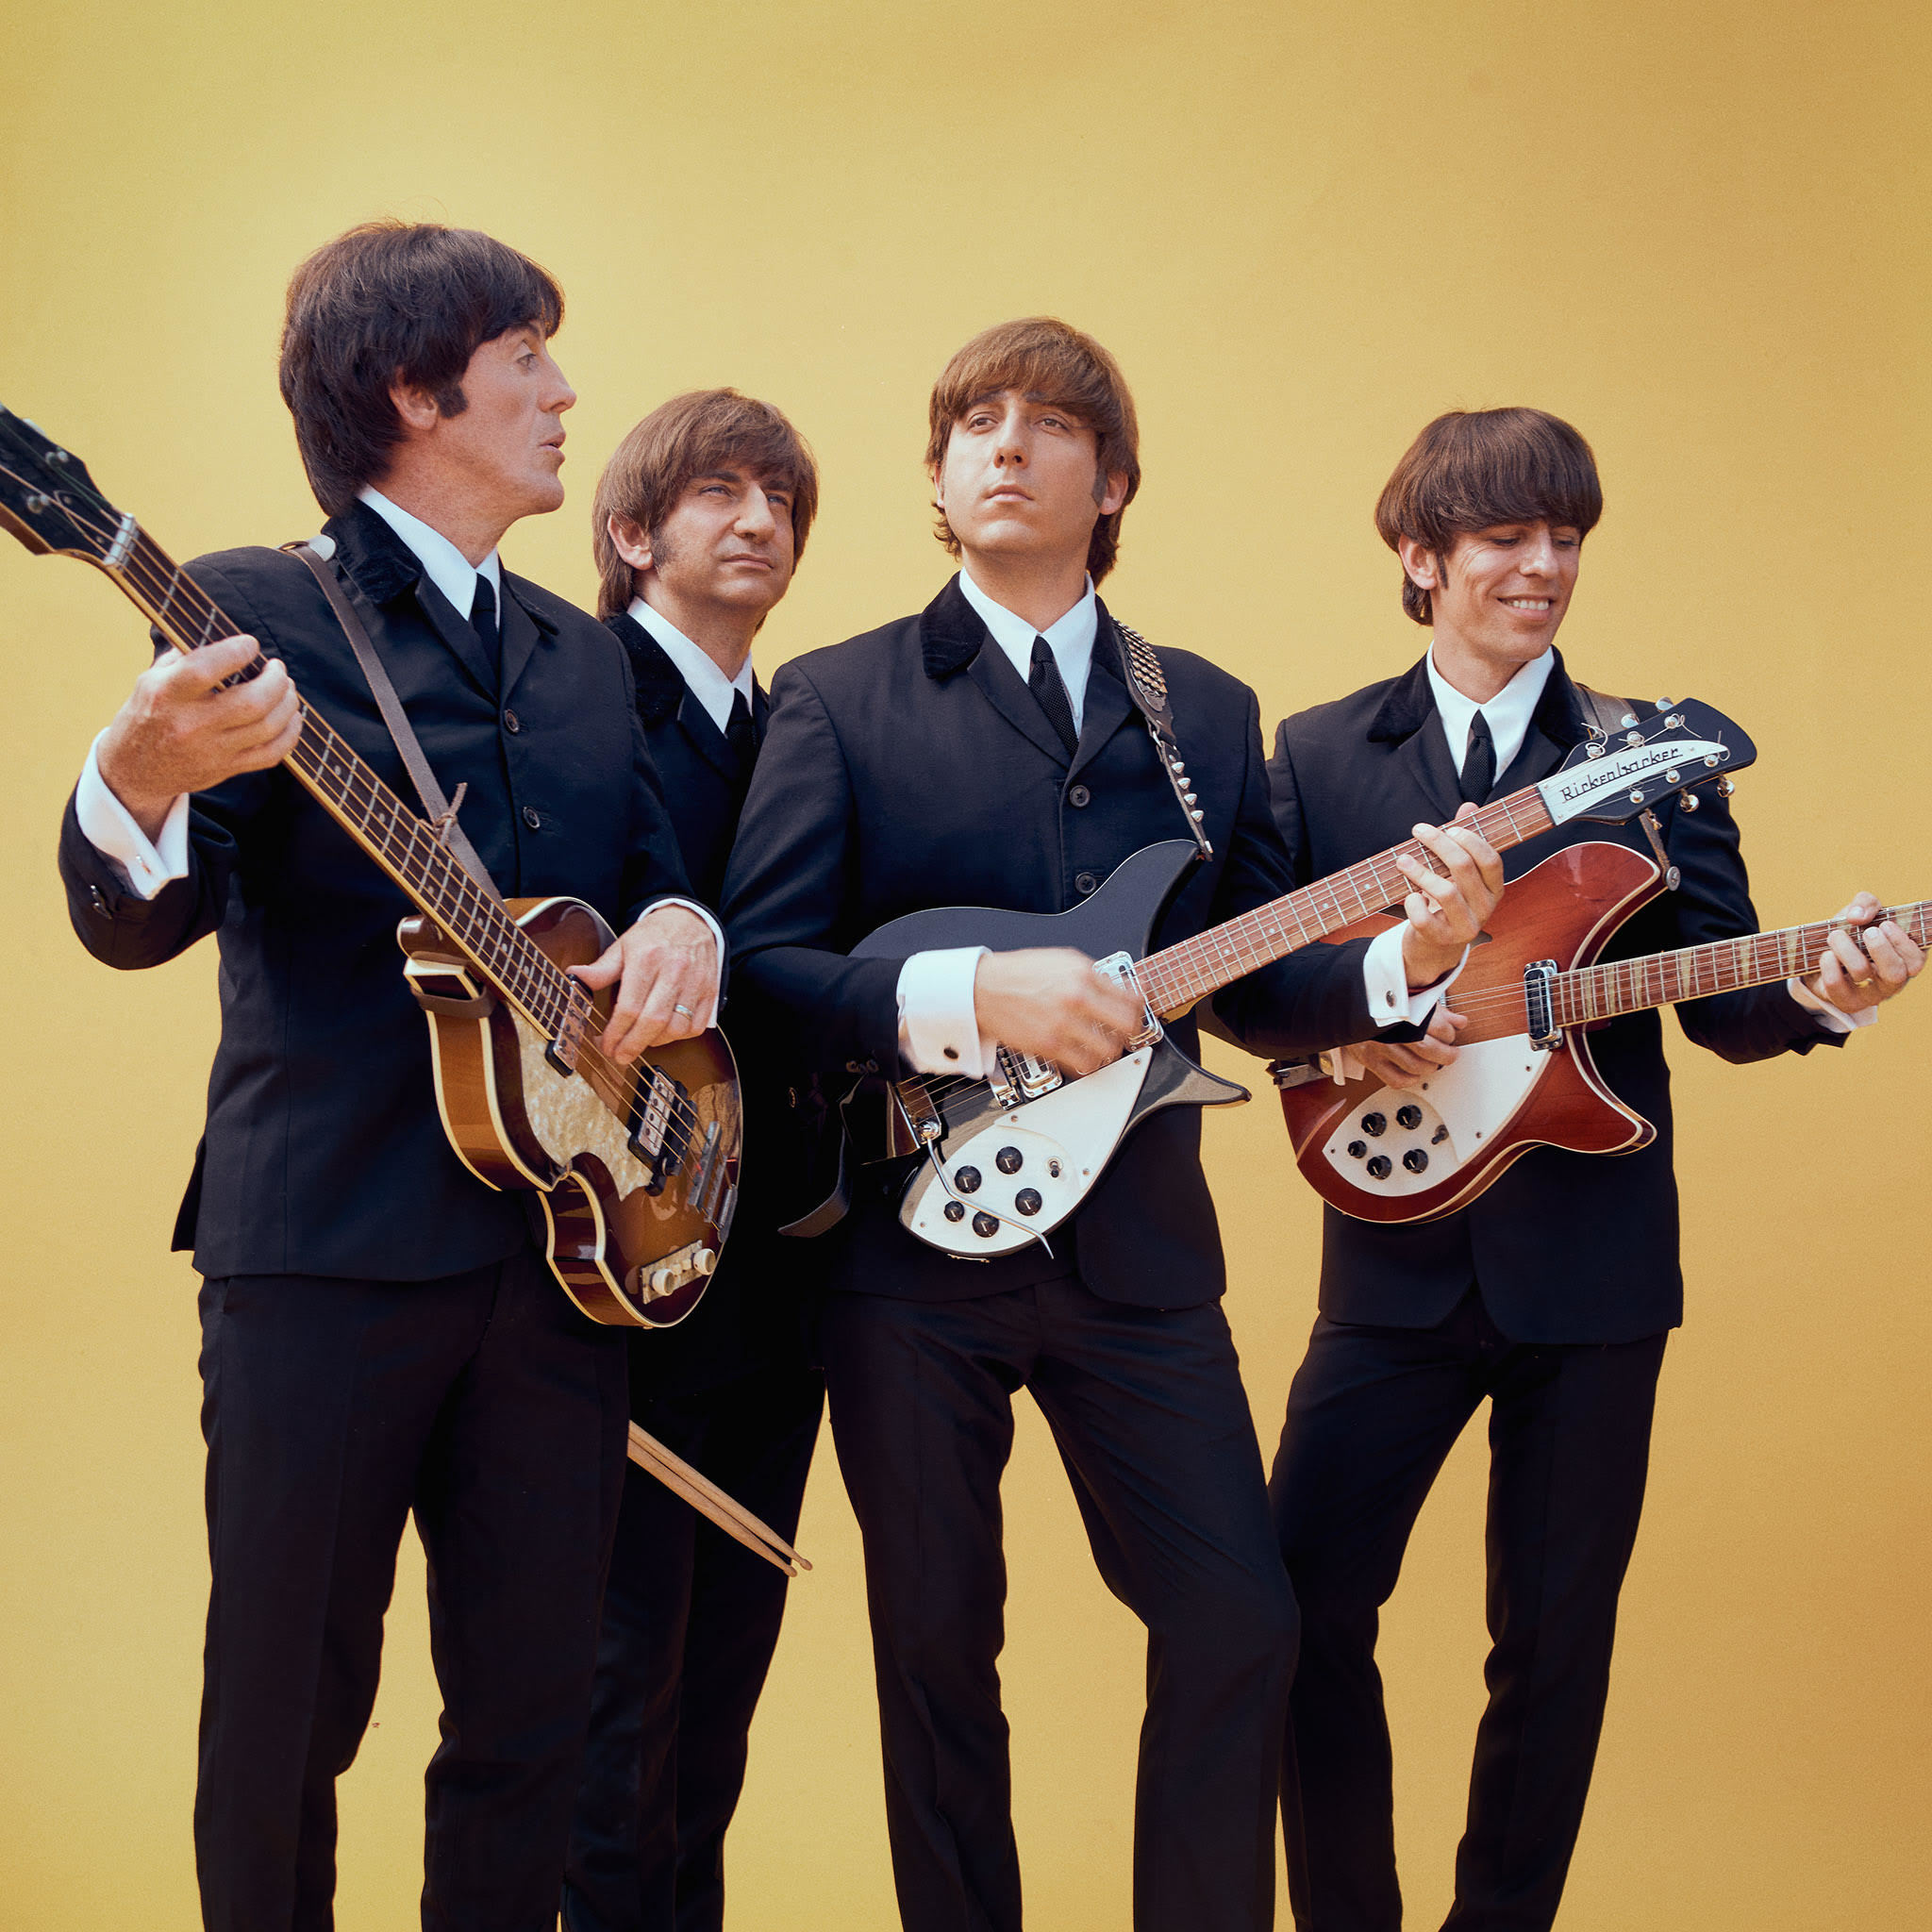 The Bootleg Beatles and OMD are coming to Oxford's New Theatre